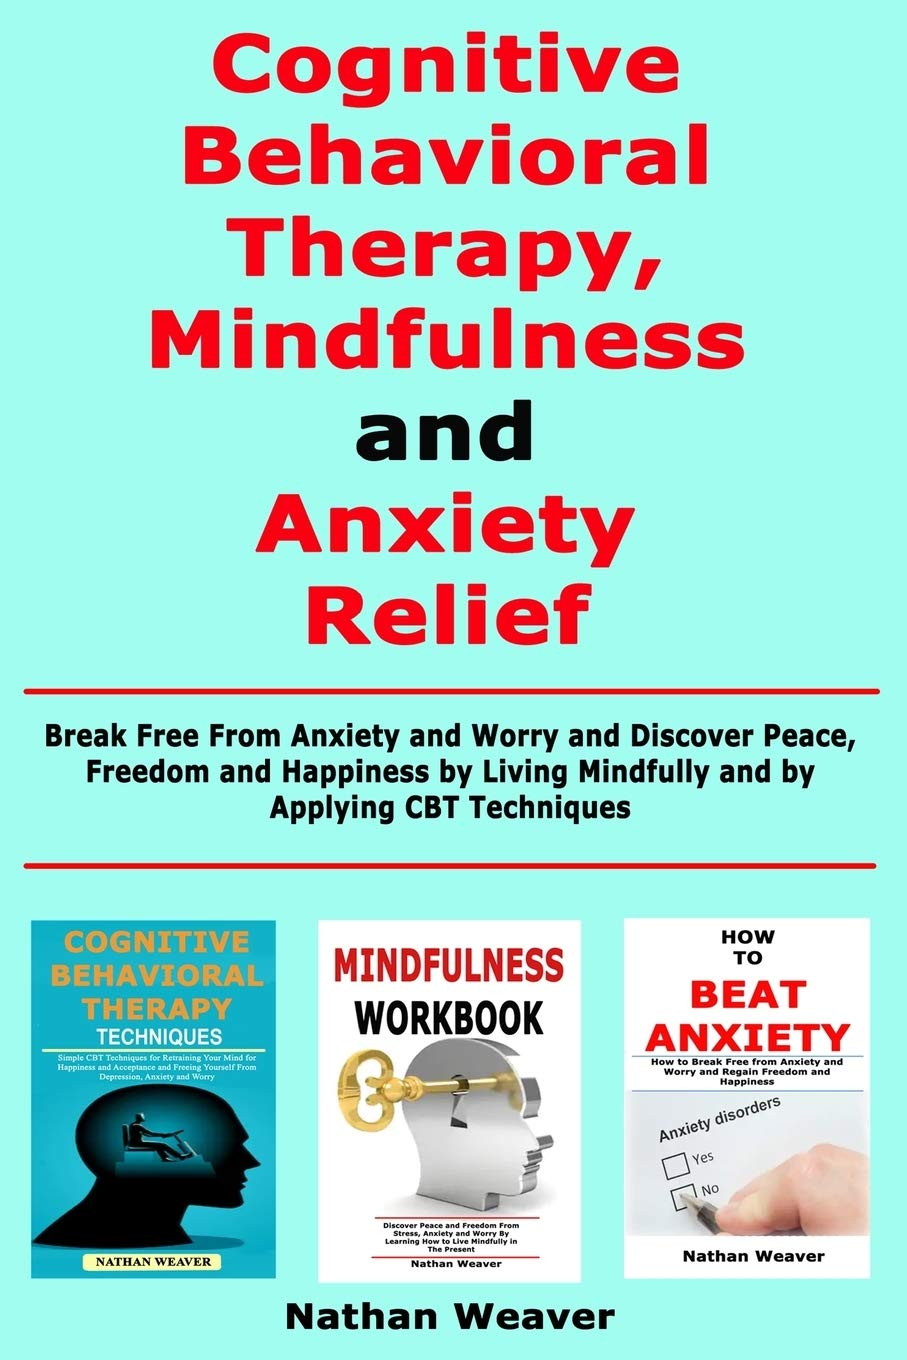 Cognitive Behavioral Therapy, Mindfulness and Anxiety Relief: Break Free From Anxiety and Worry and Discover Peace, Freedom and Happiness by Living Mindfully and by Applying CBT Techniques